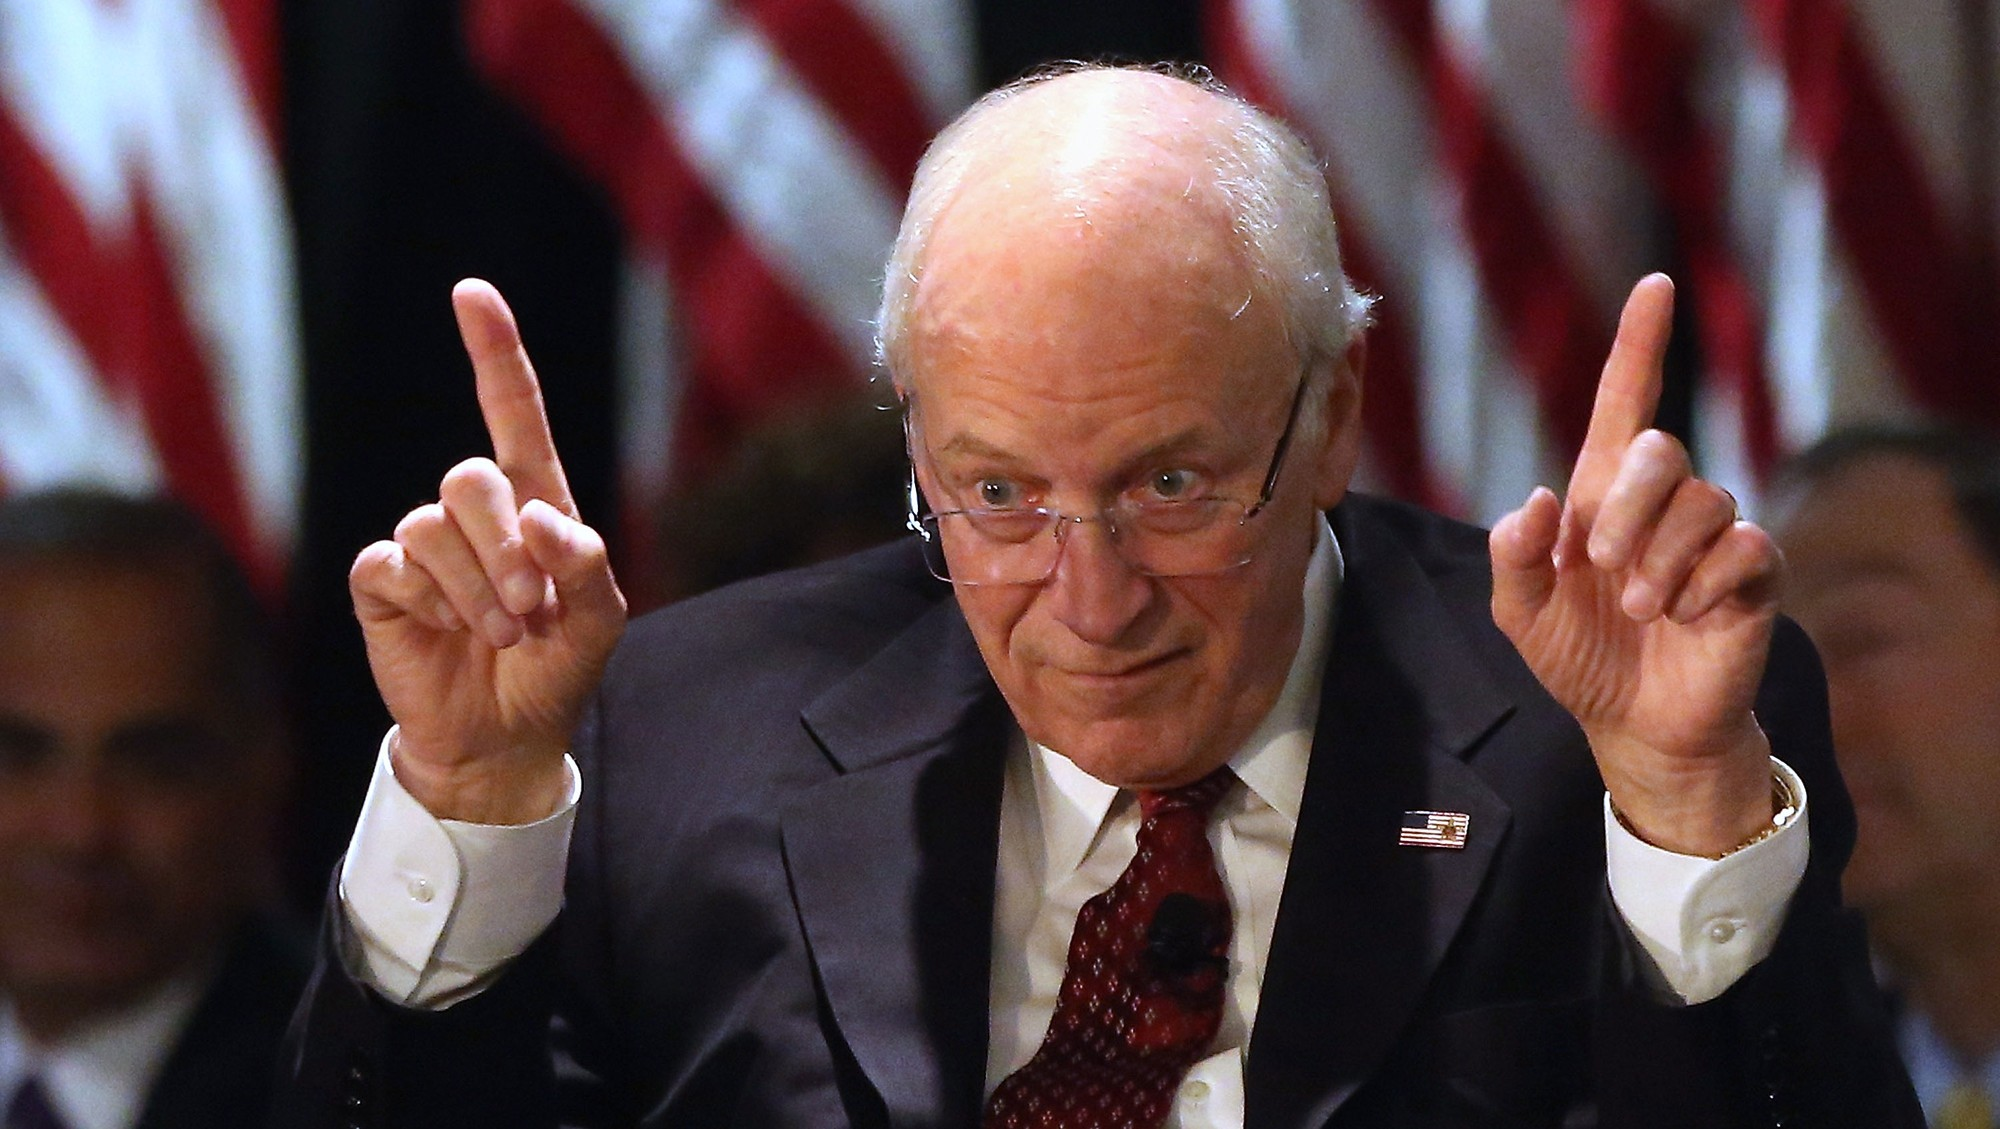 Dick cheney says wear a mask